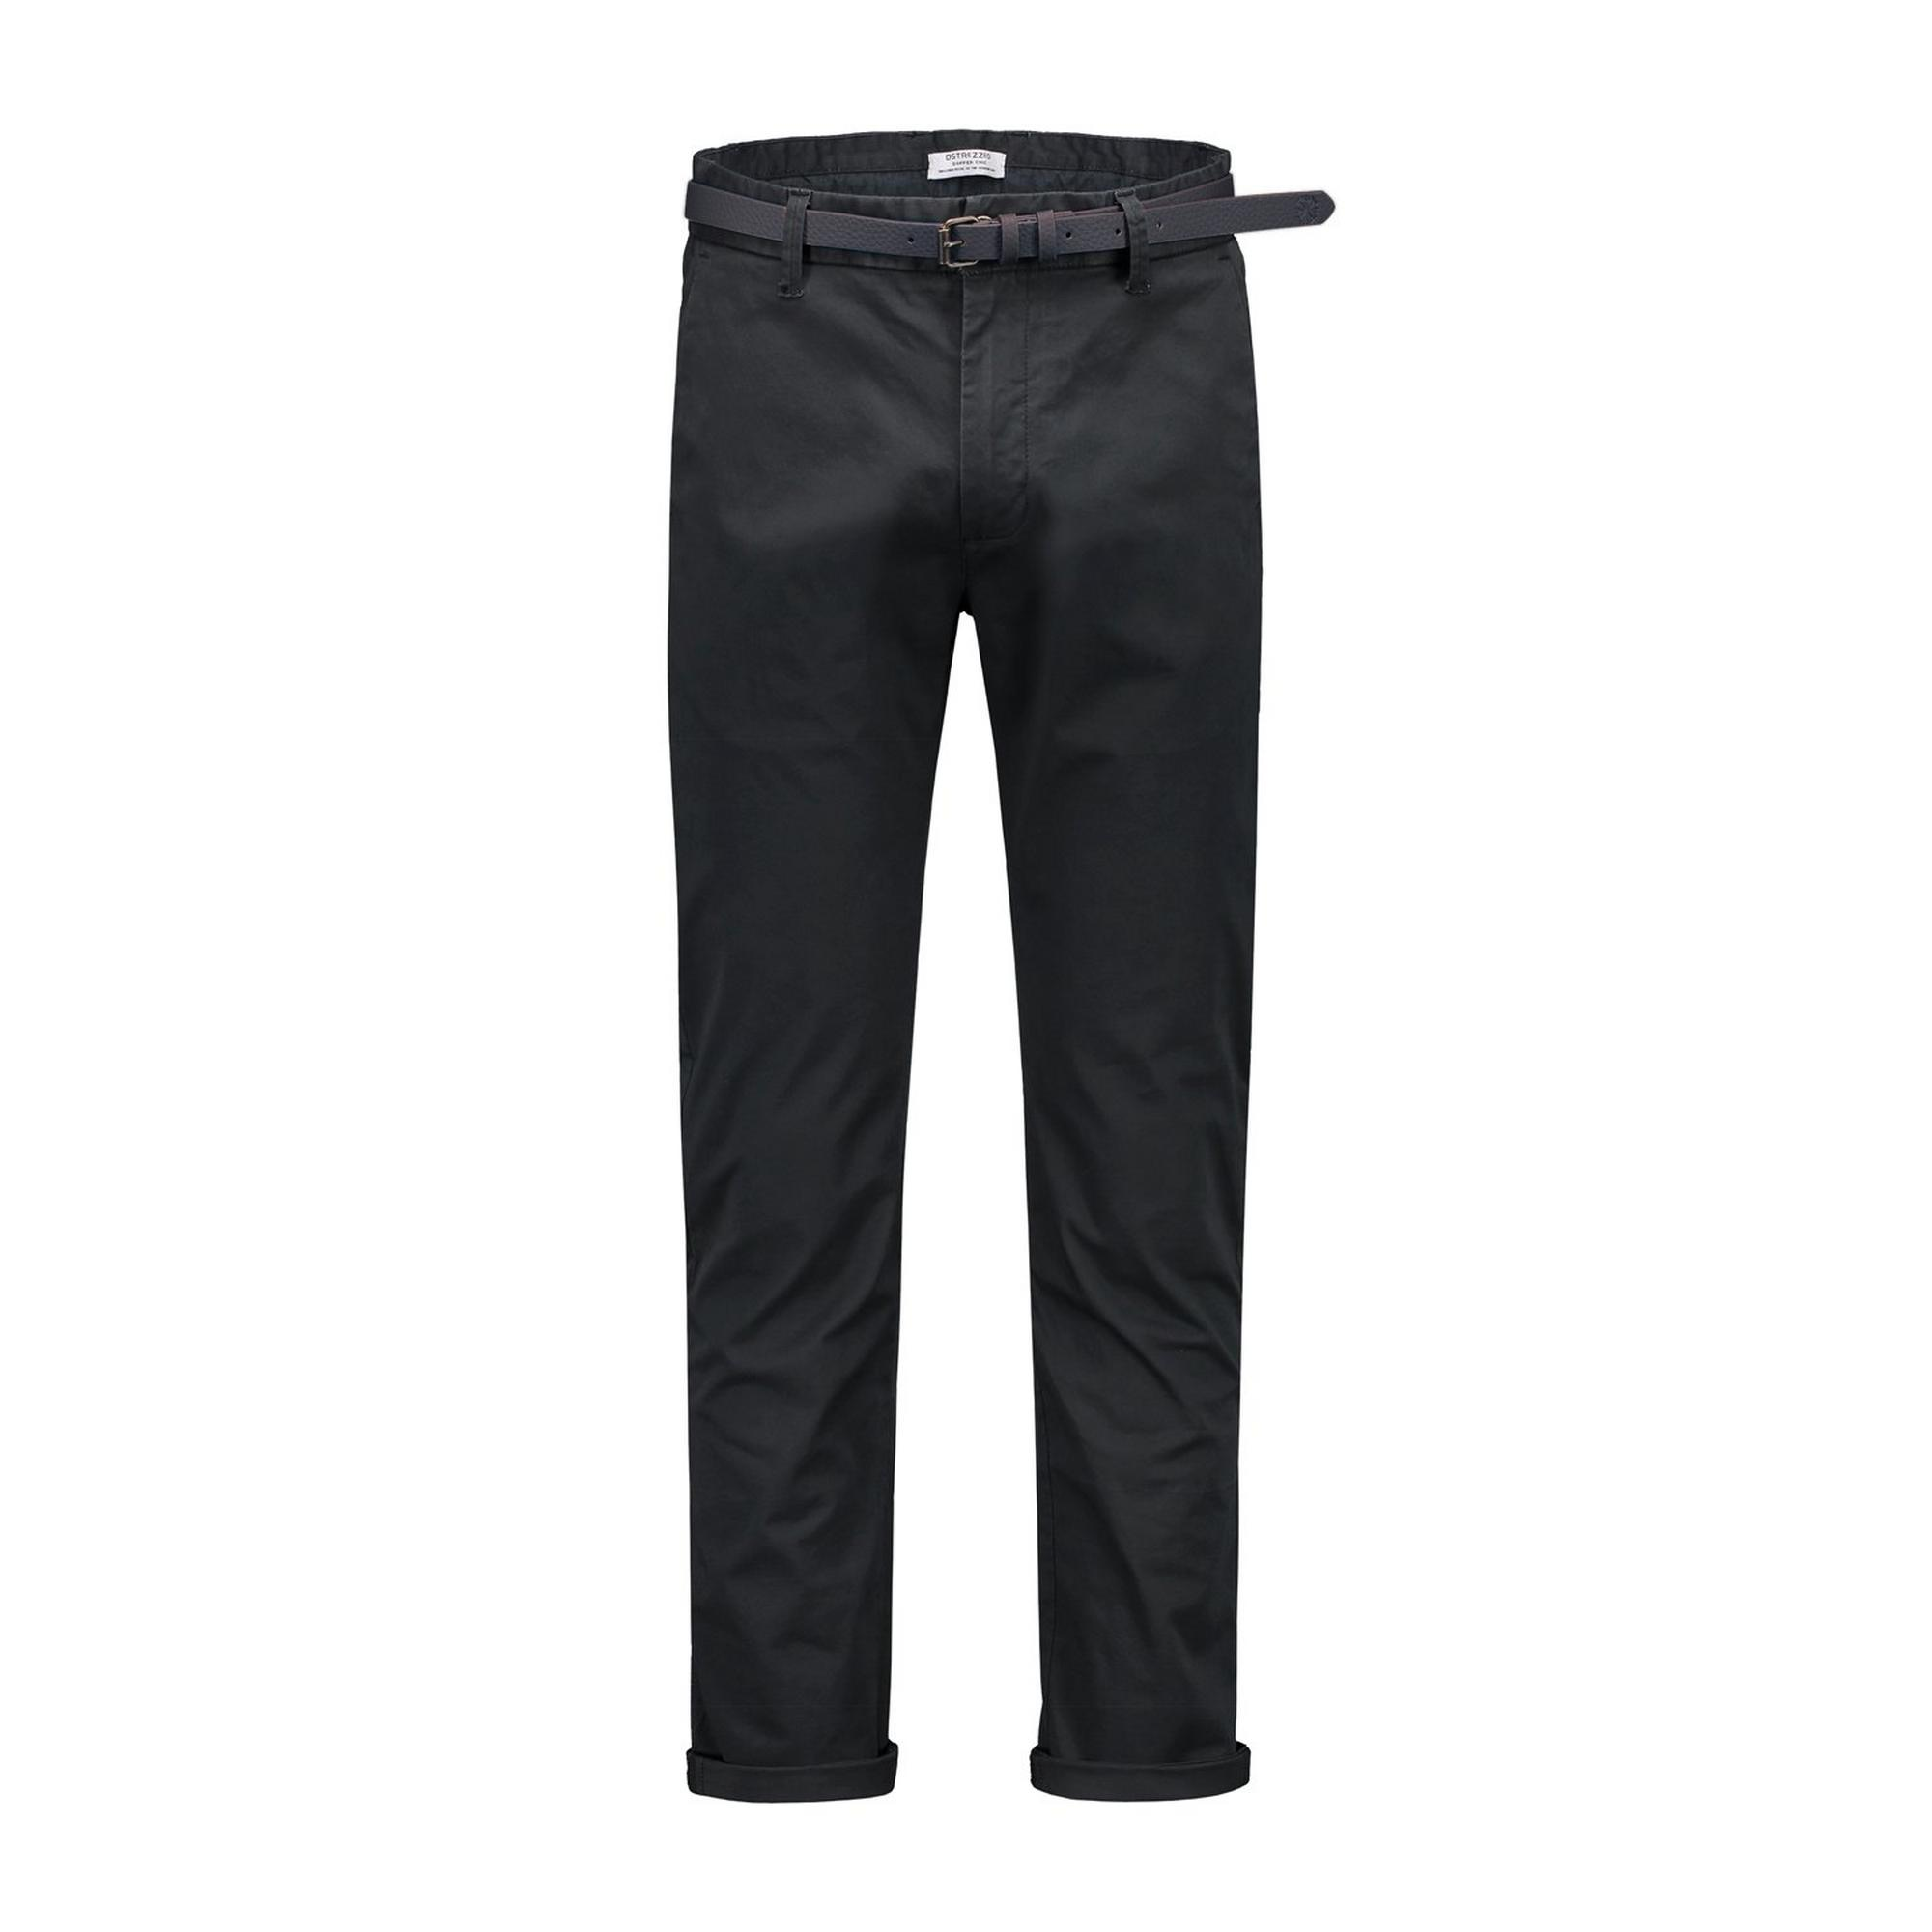 Men's Chino Light Stretch Twill Pant with Belt